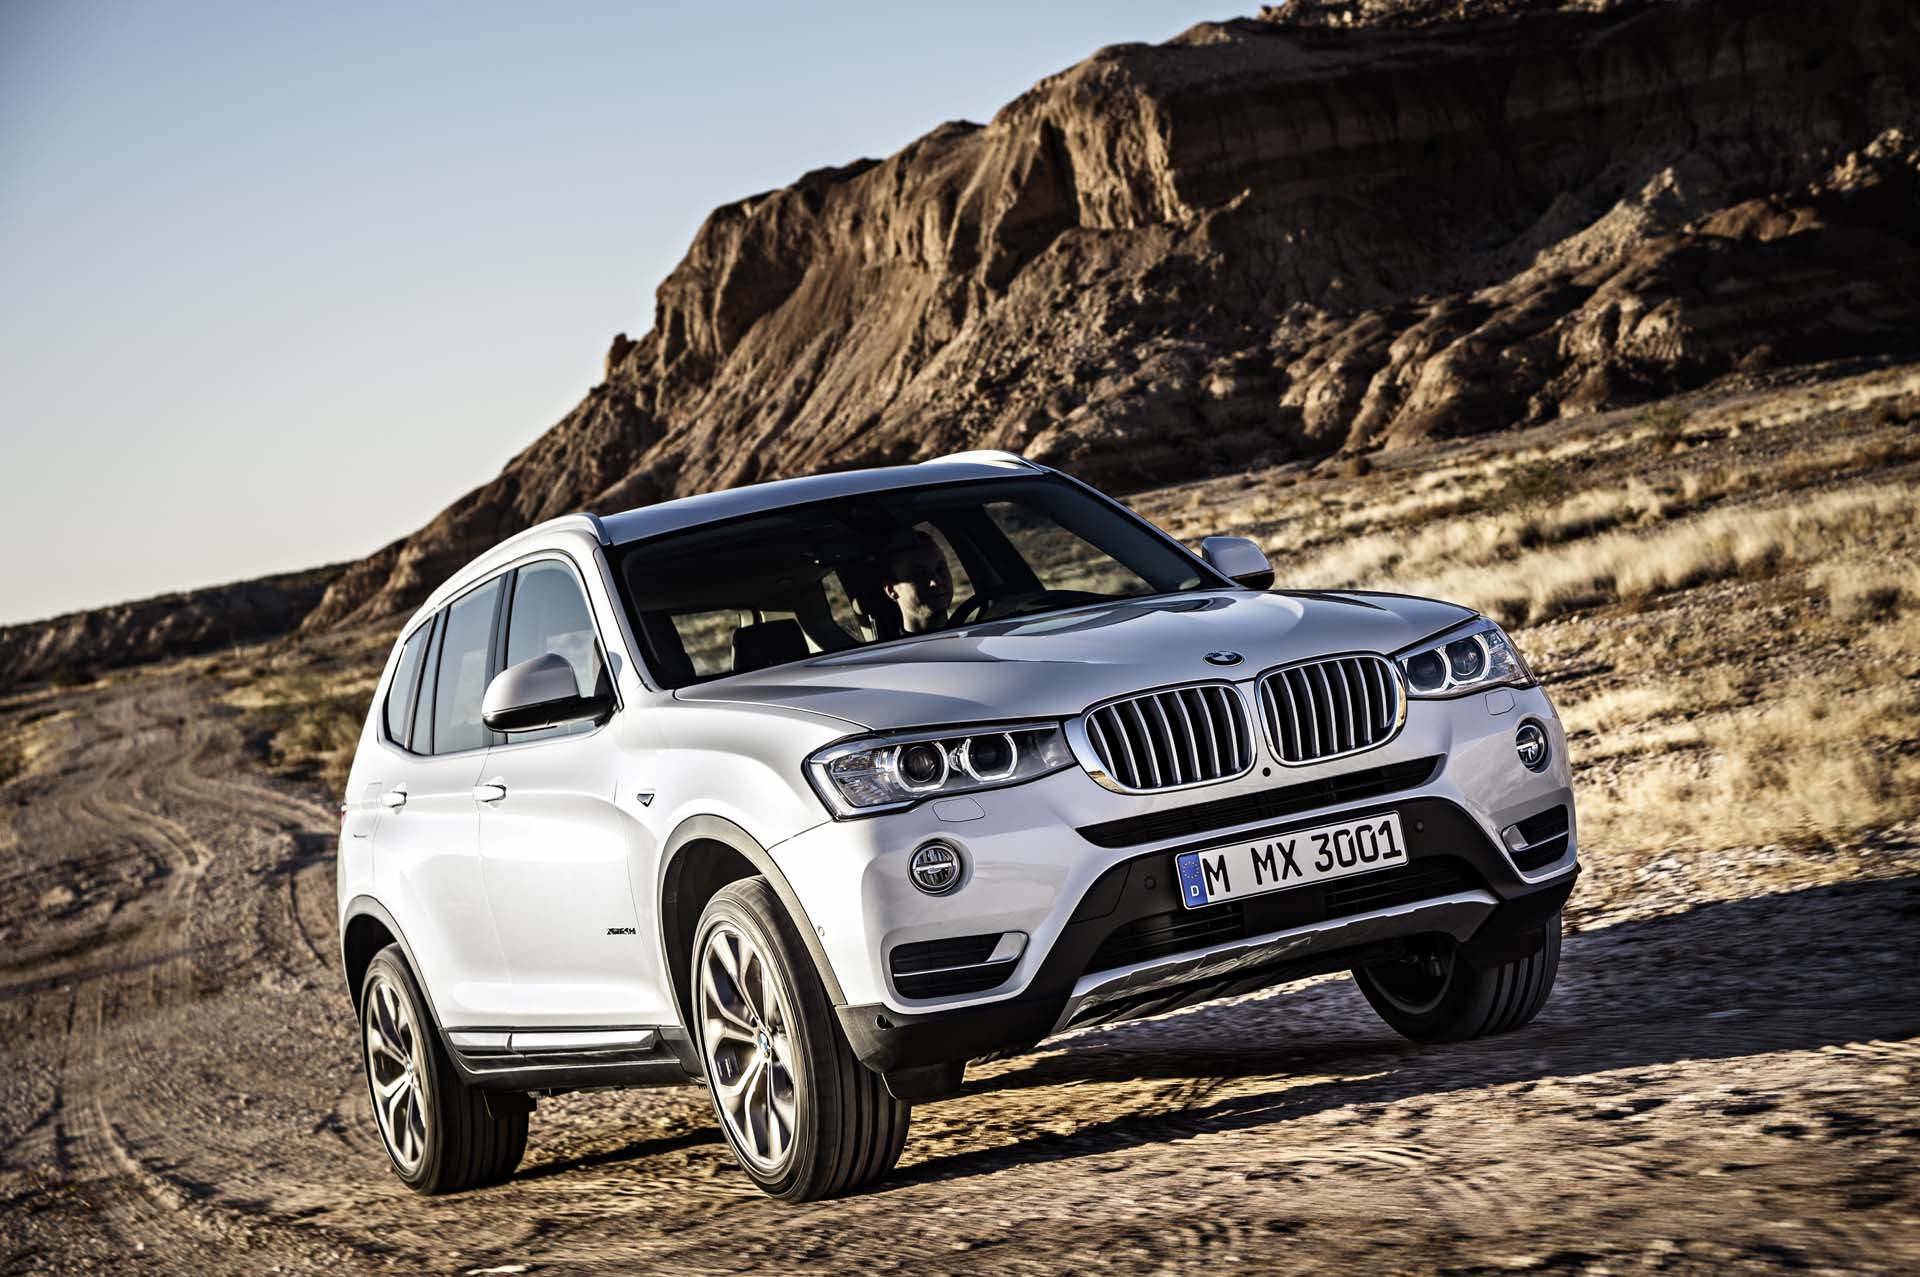 2017 BMW X3 Safety Review and Crash Test Ratings  The Car Connection